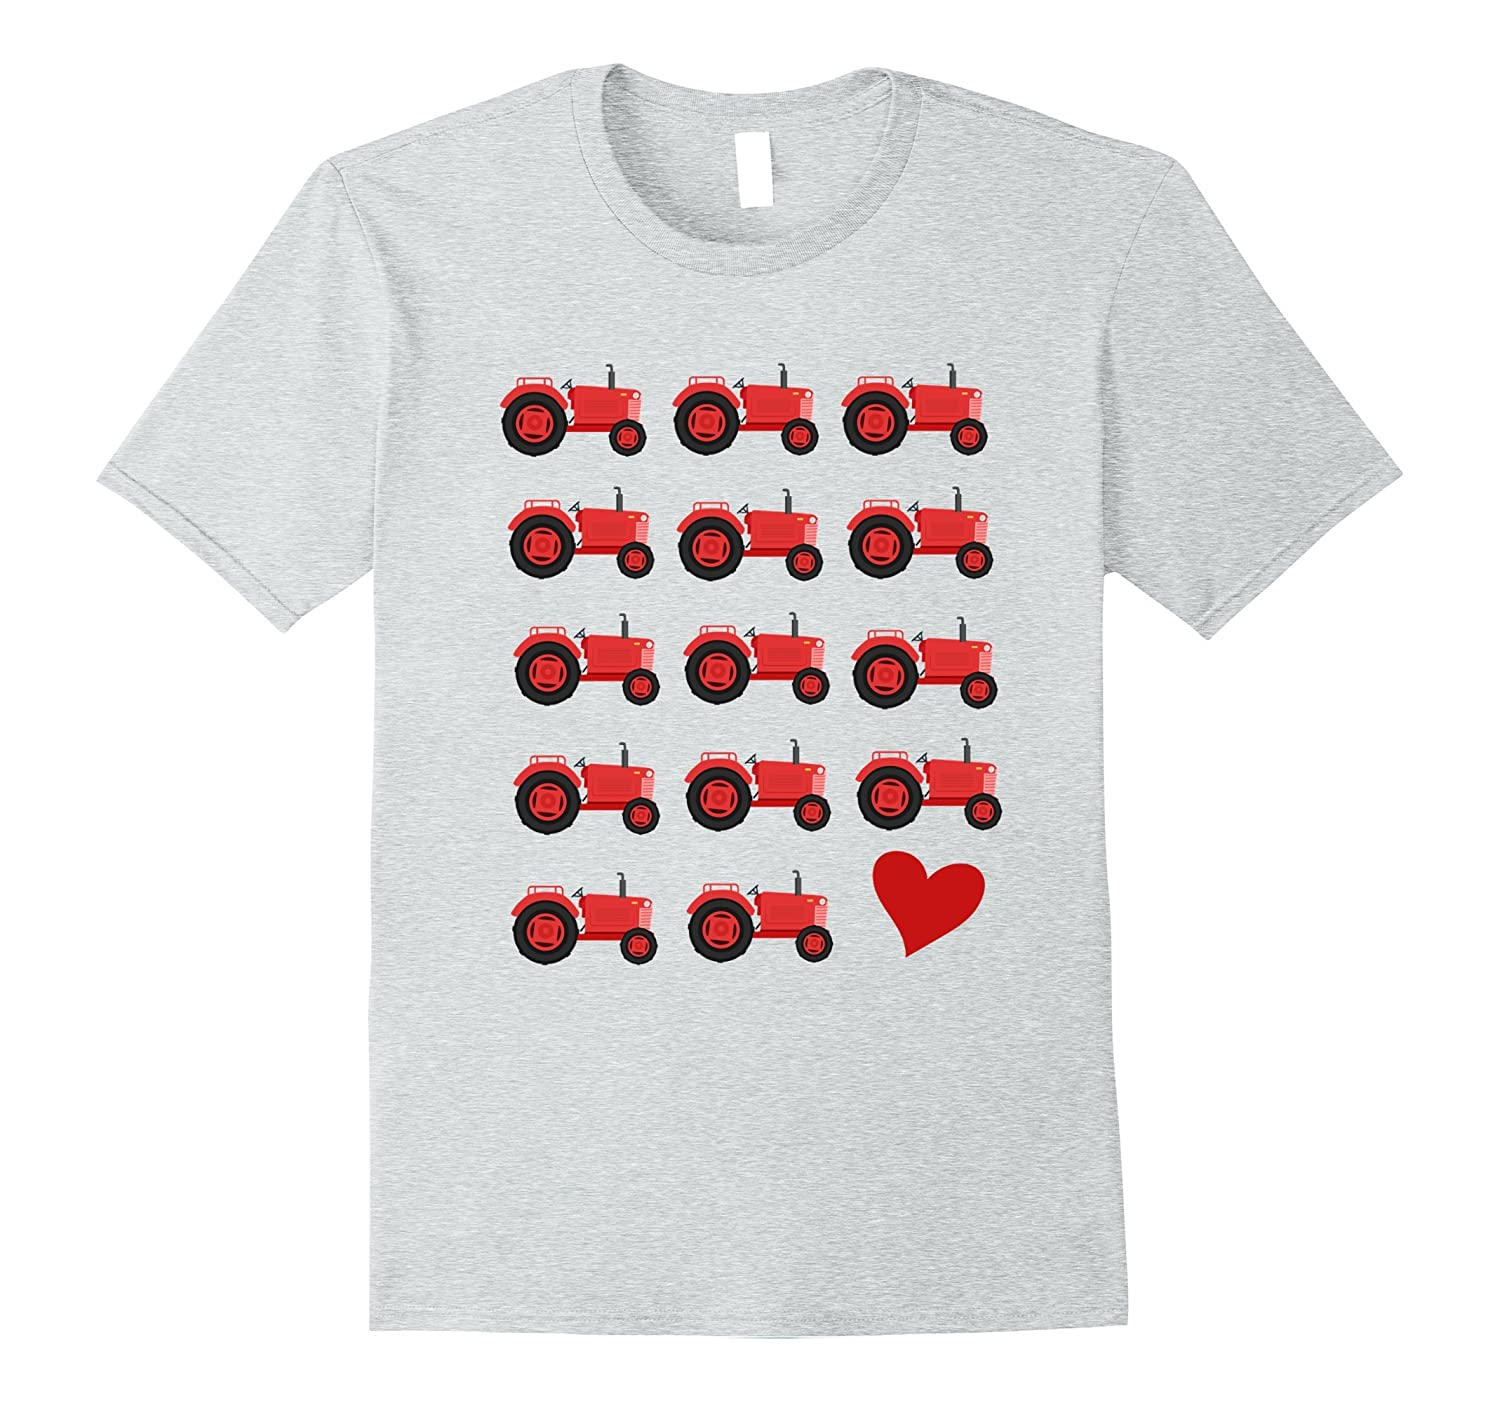 99917f9fc ... Boys' I Love Red Tractors T-Shirt For Toddlers Kids Farmers-gm ...